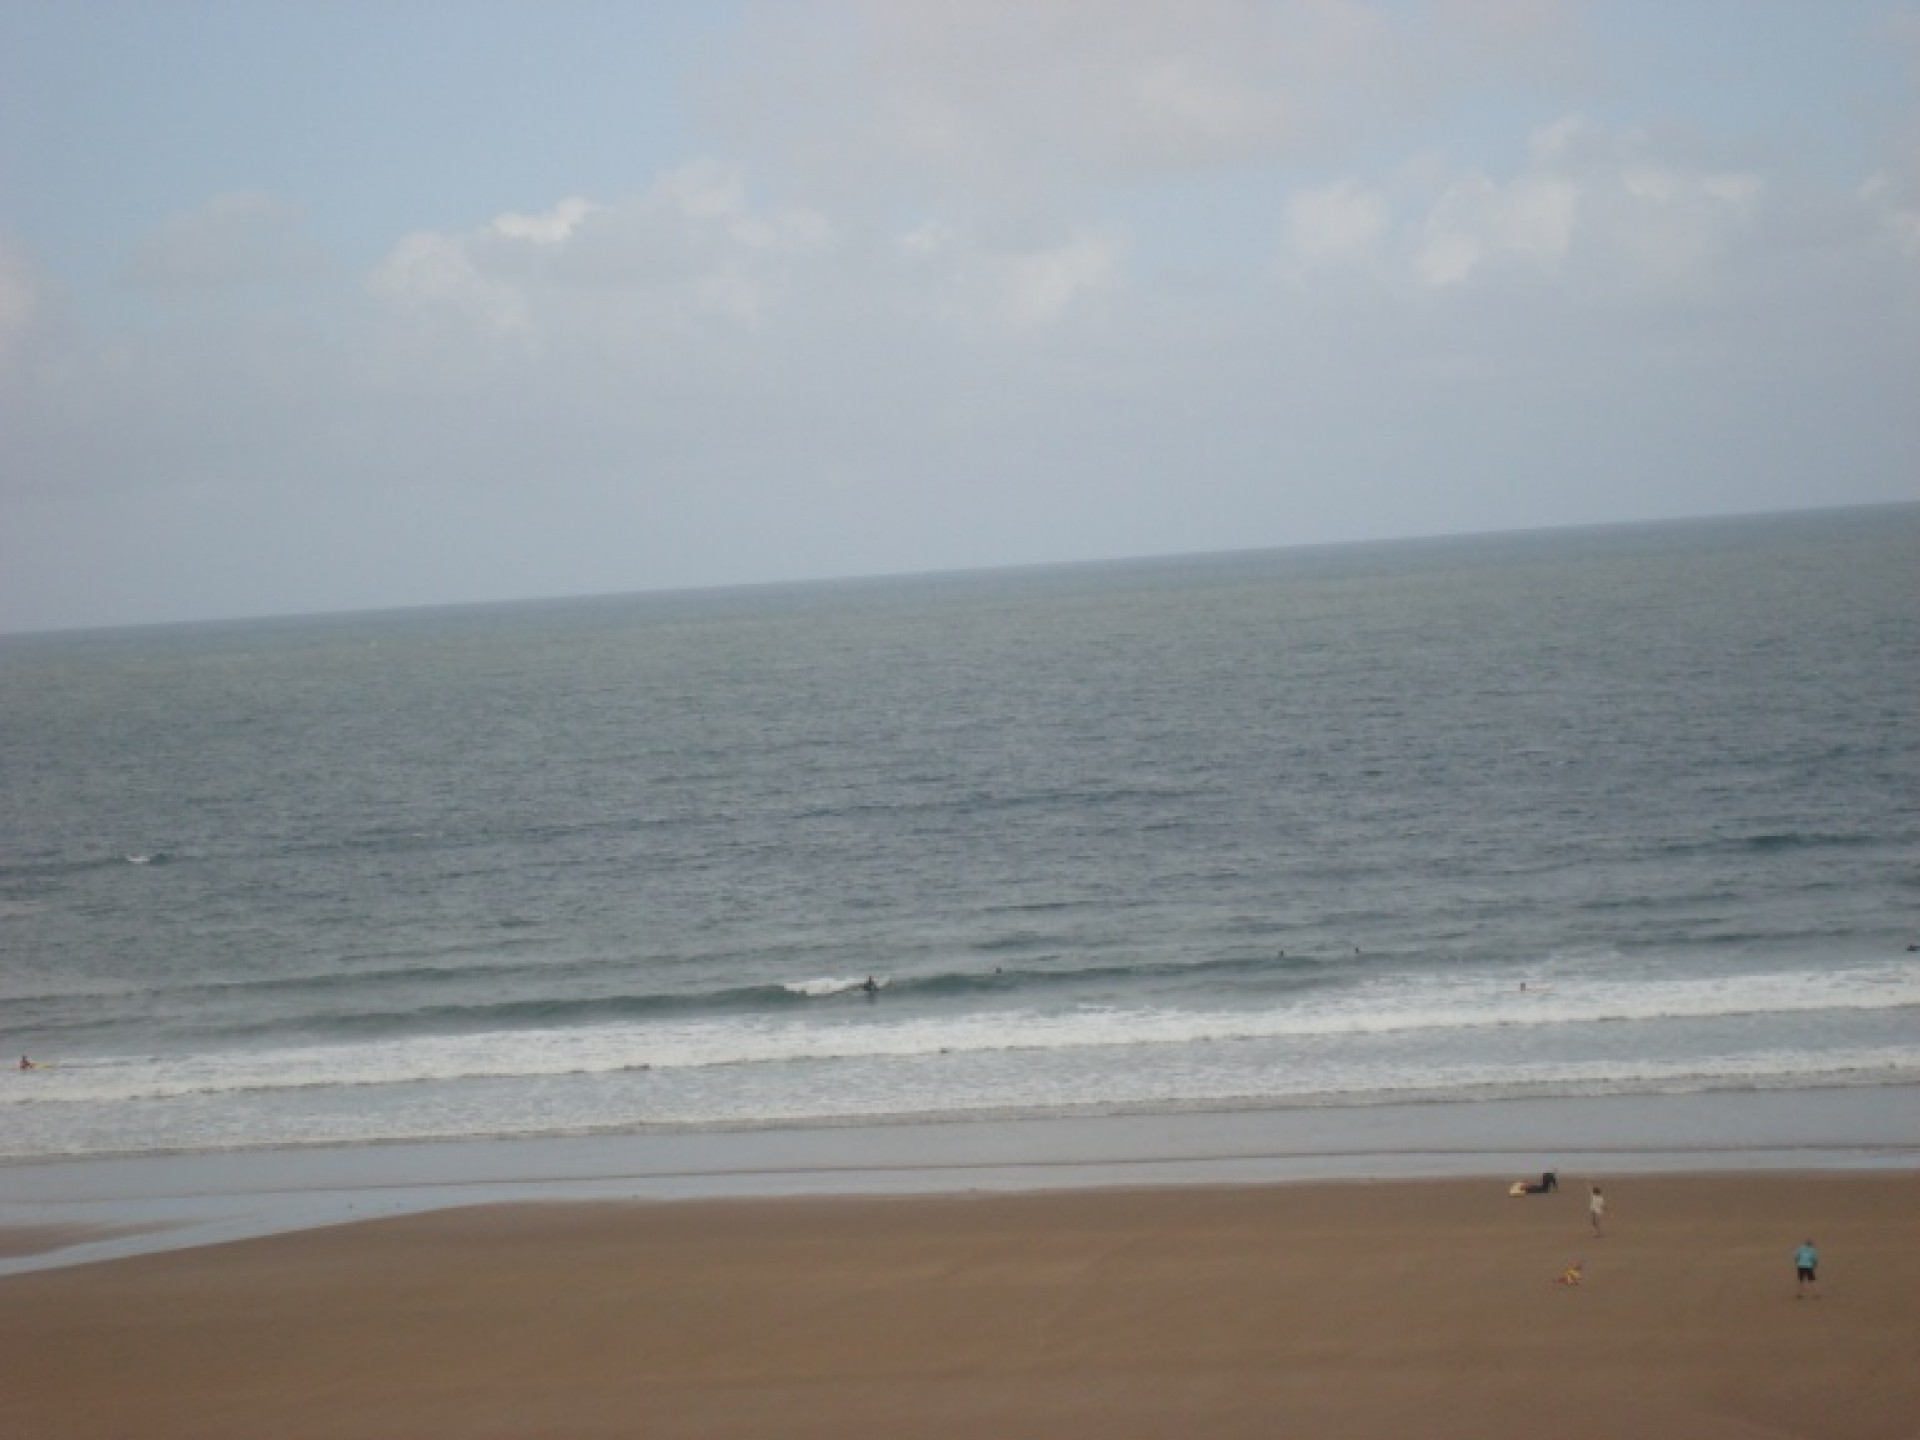 Surfer J's photo of Putsborough